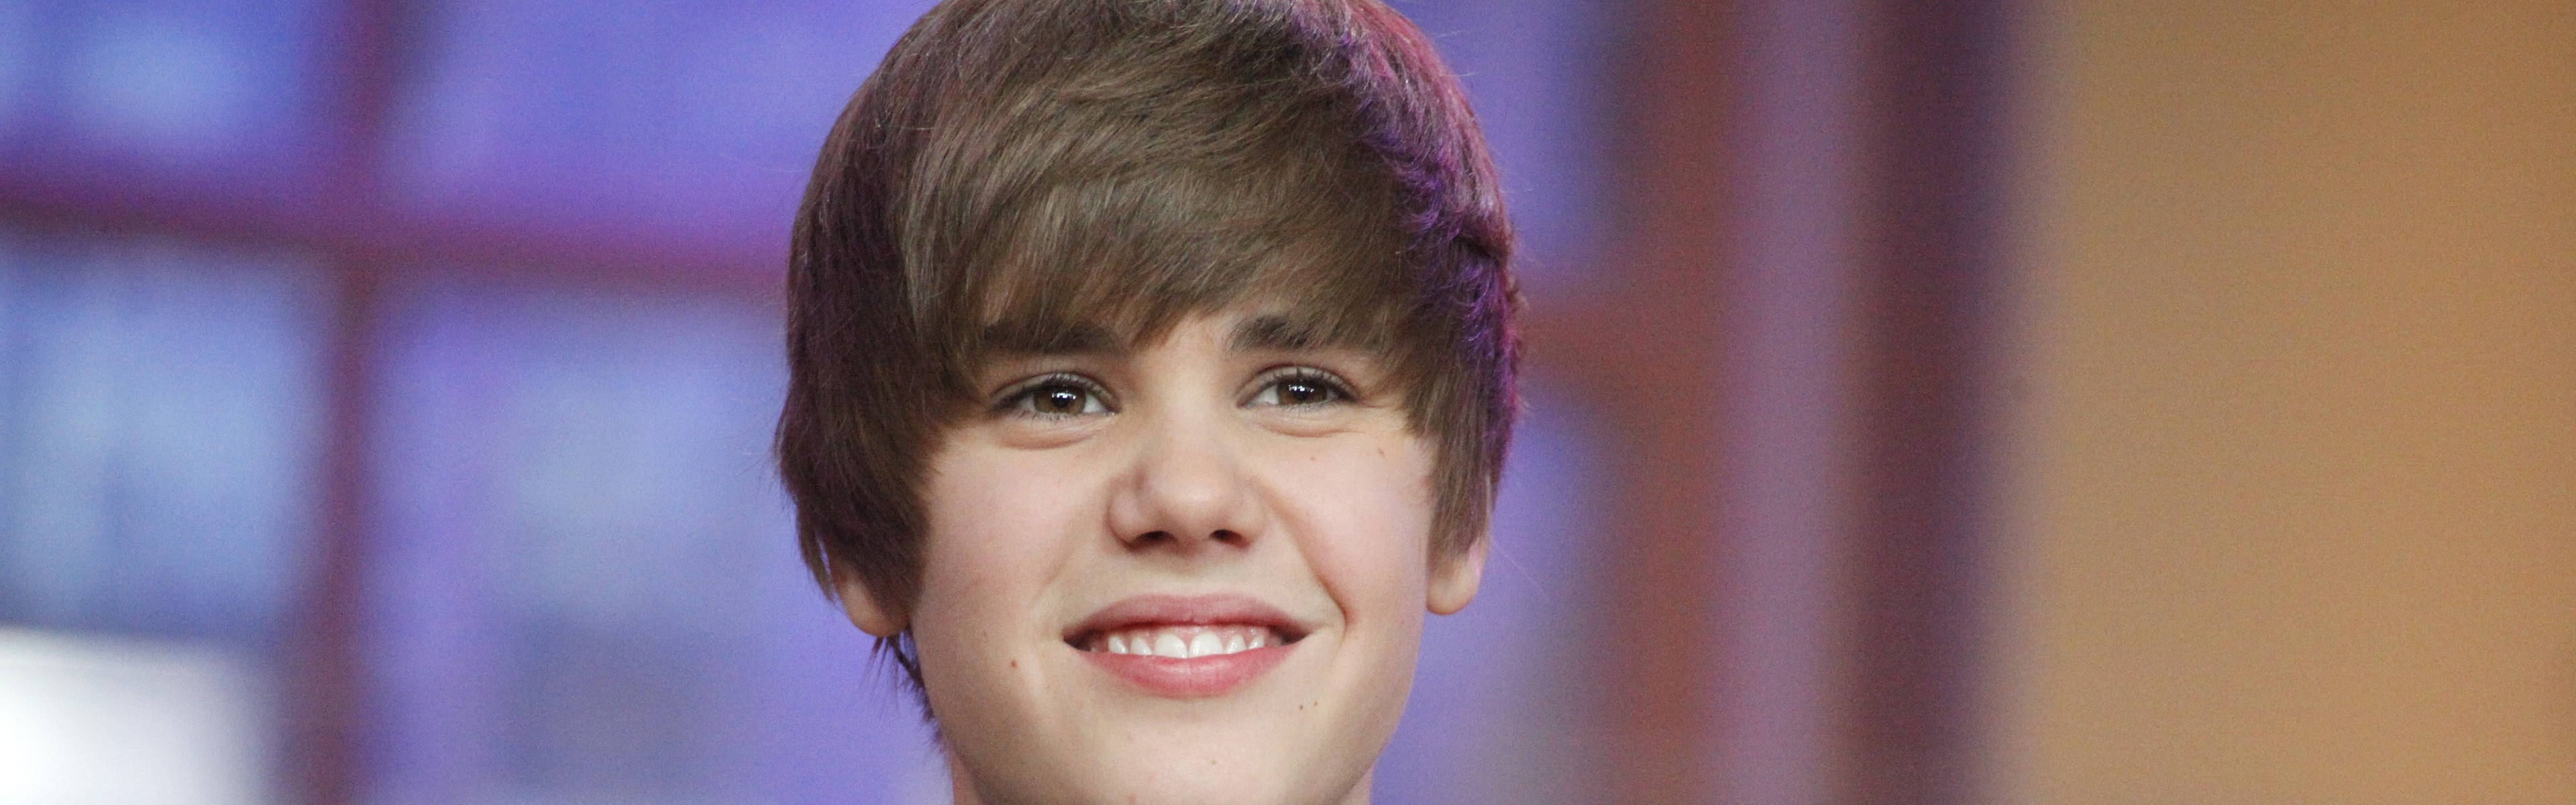 3840x1200  Wallpaper justin bieber, shirt, smile, boy, singer